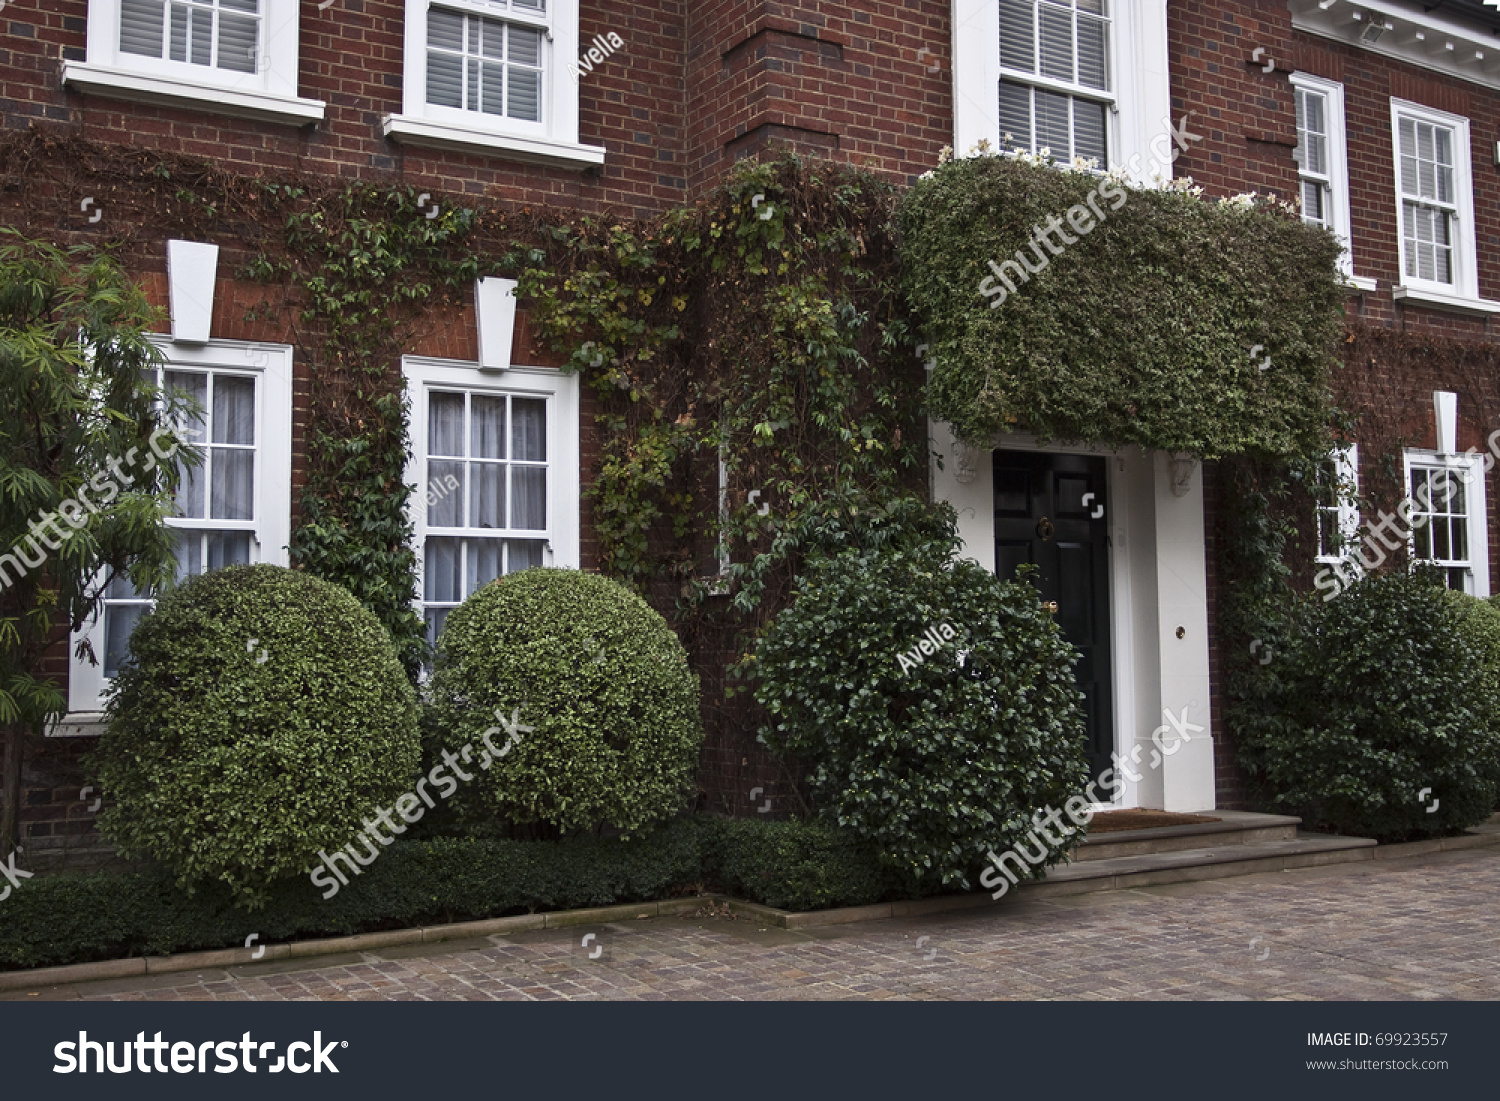 English style house stock photo 69923557 shutterstock for English style houses architecture